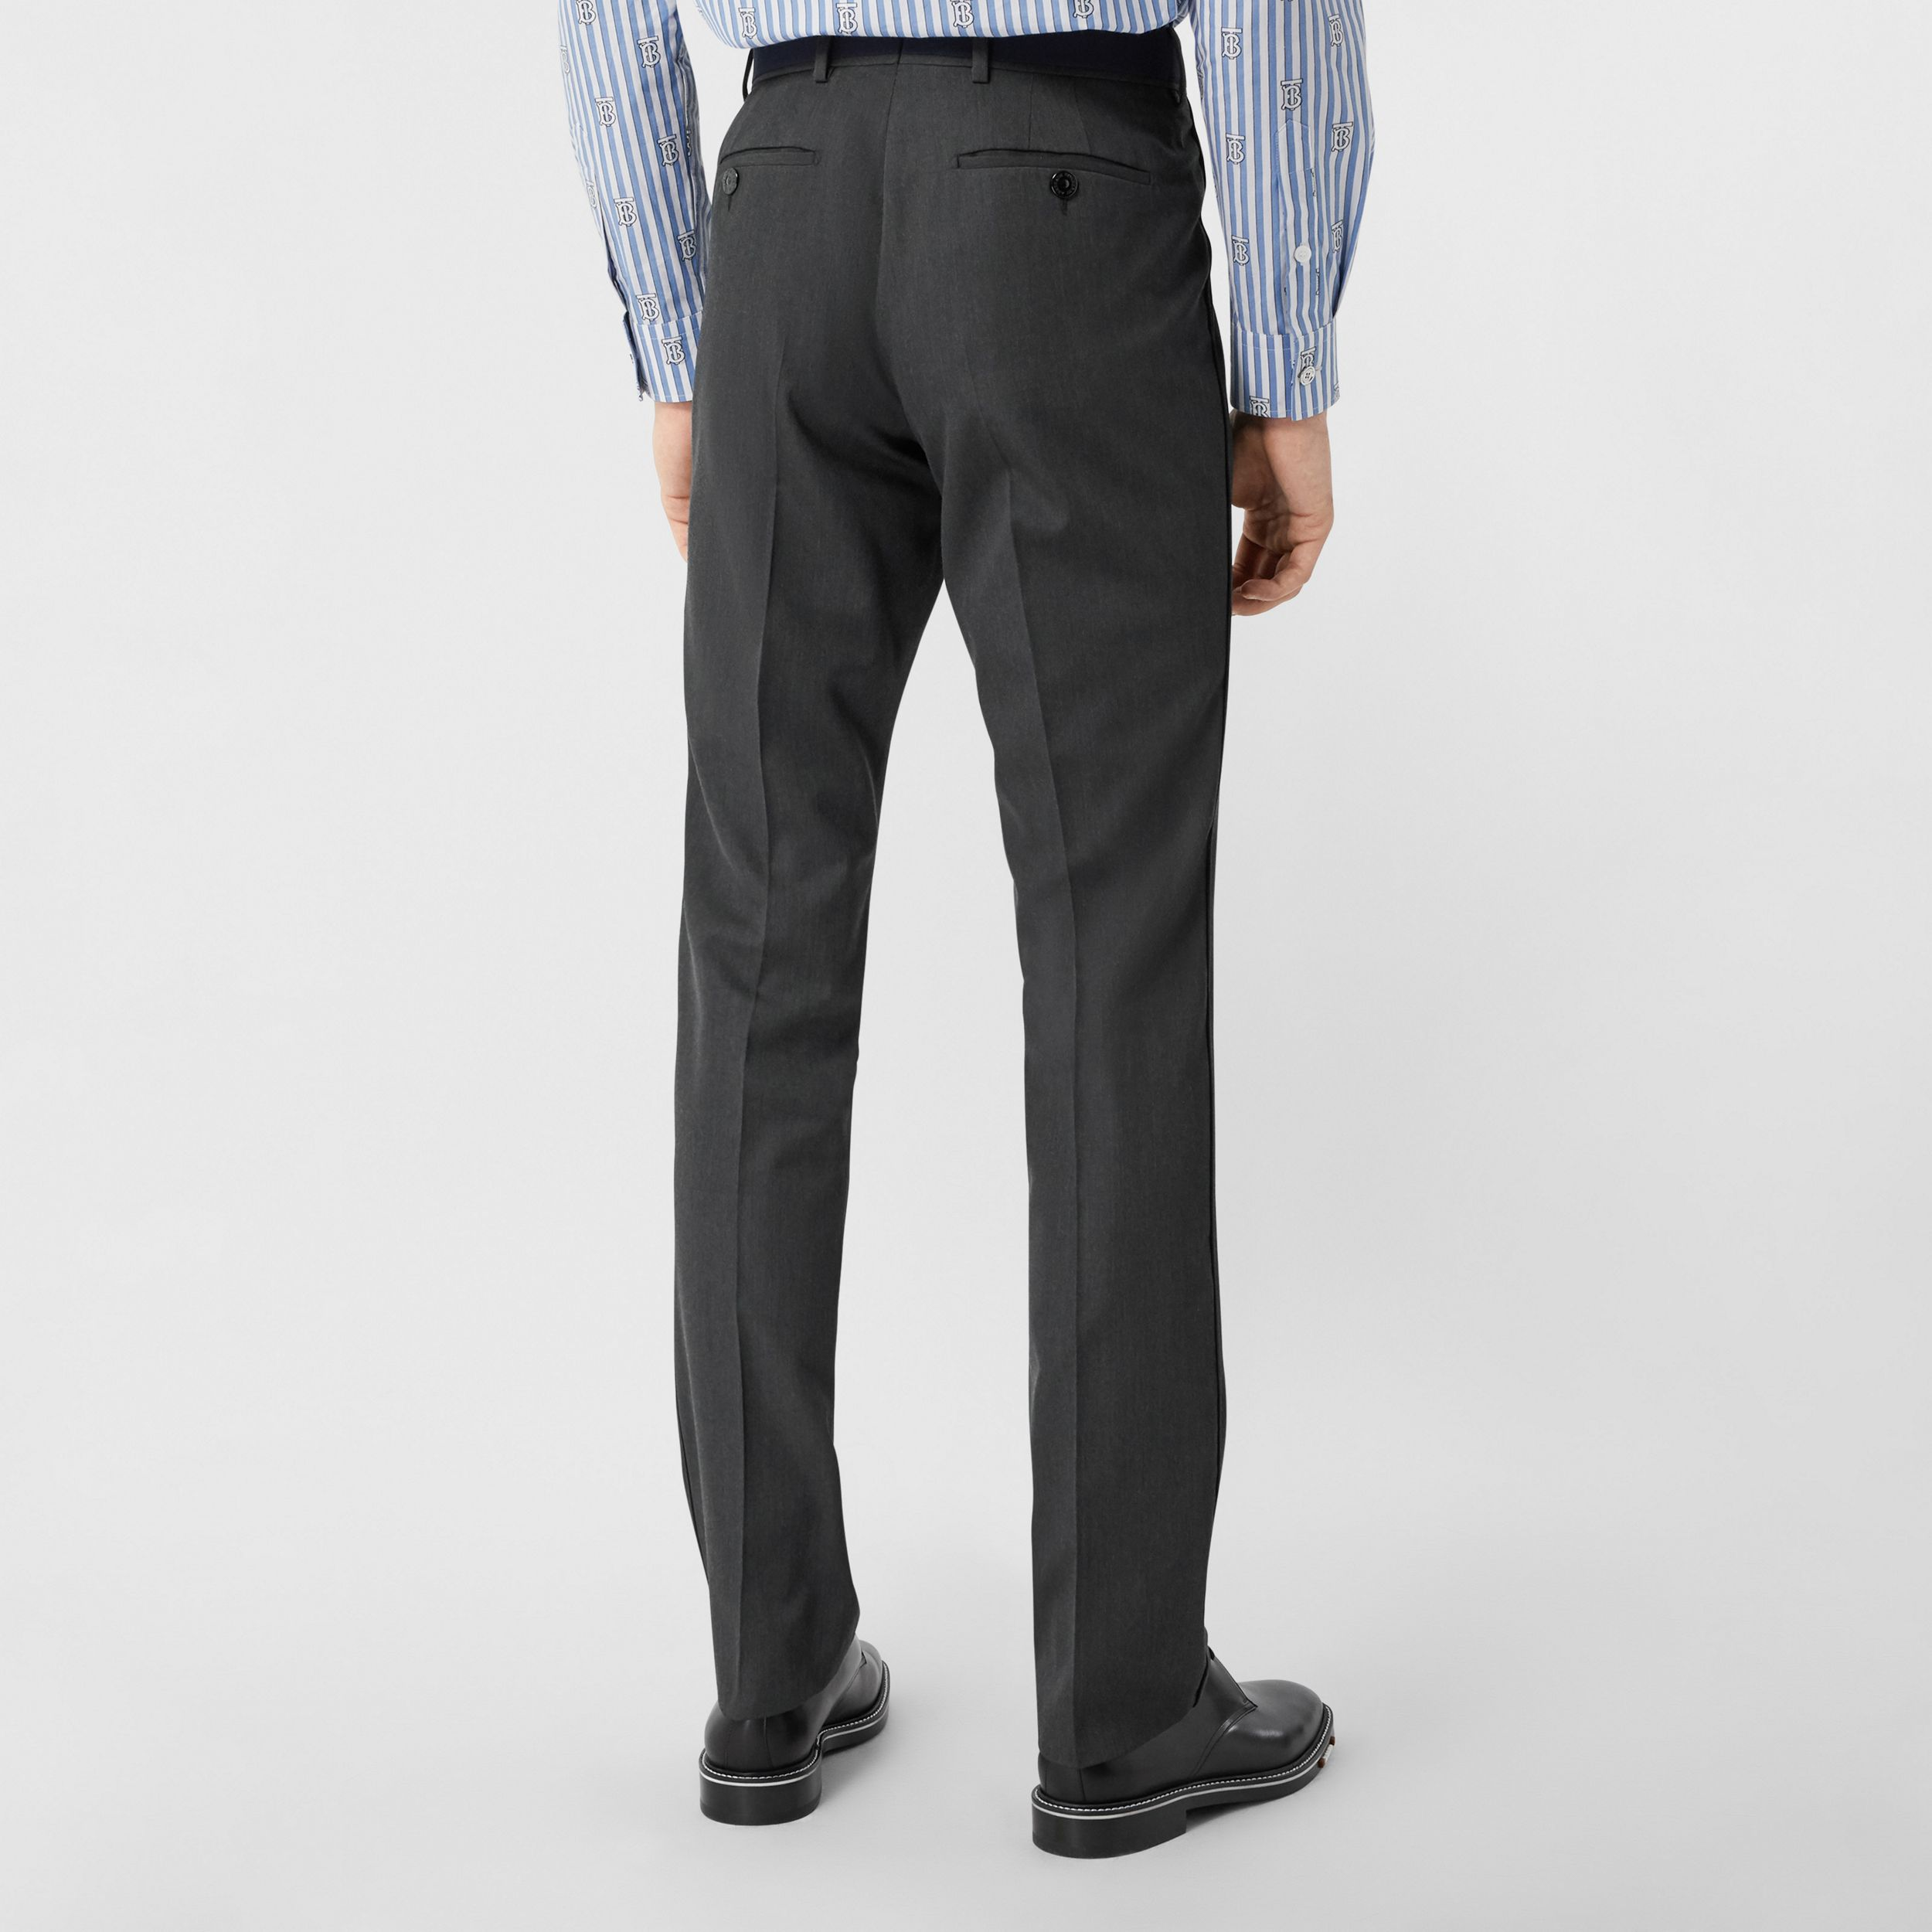 Classic Fit Panelled Wool Tailored Trousers in Charcoal - Men | Burberry United Kingdom - 3